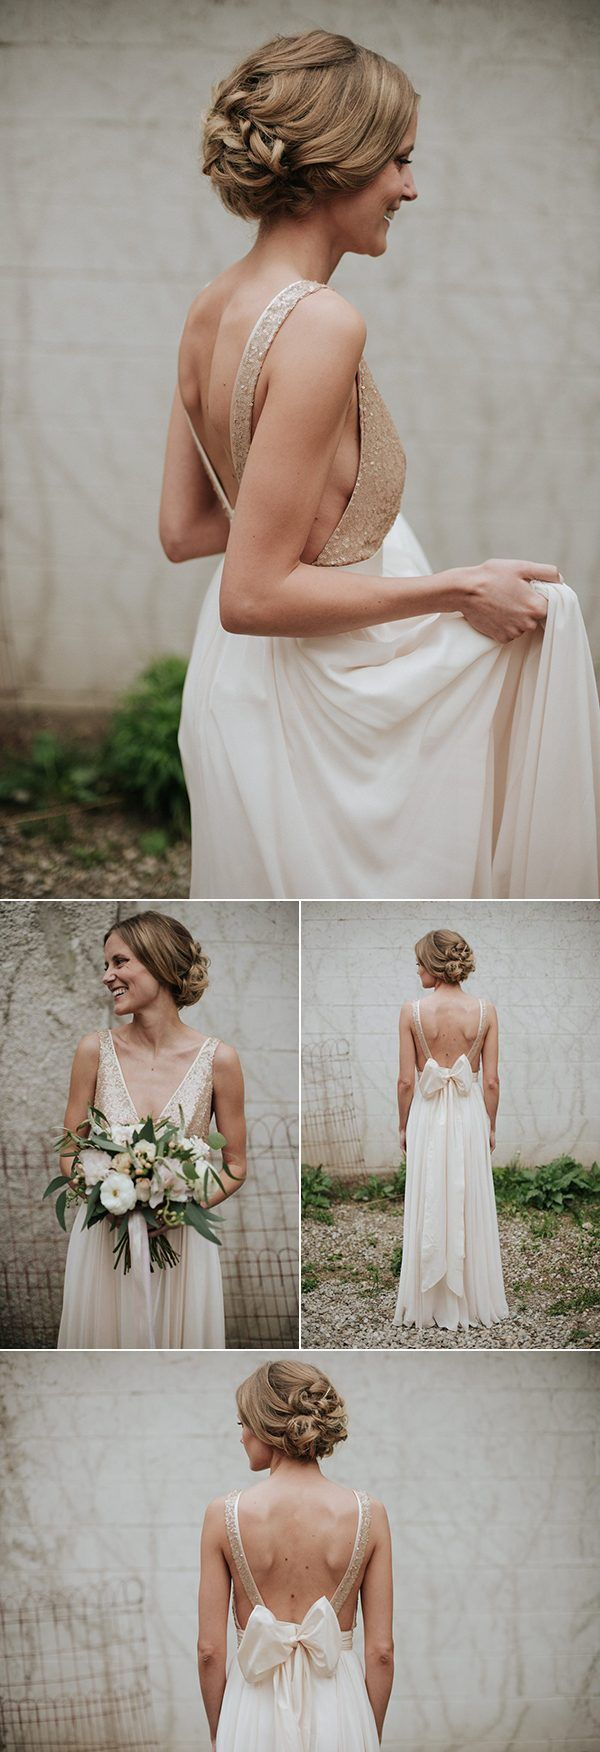 56 best Wedding Ideas - Makeup and Hair images on Pinterest | Bridal ...